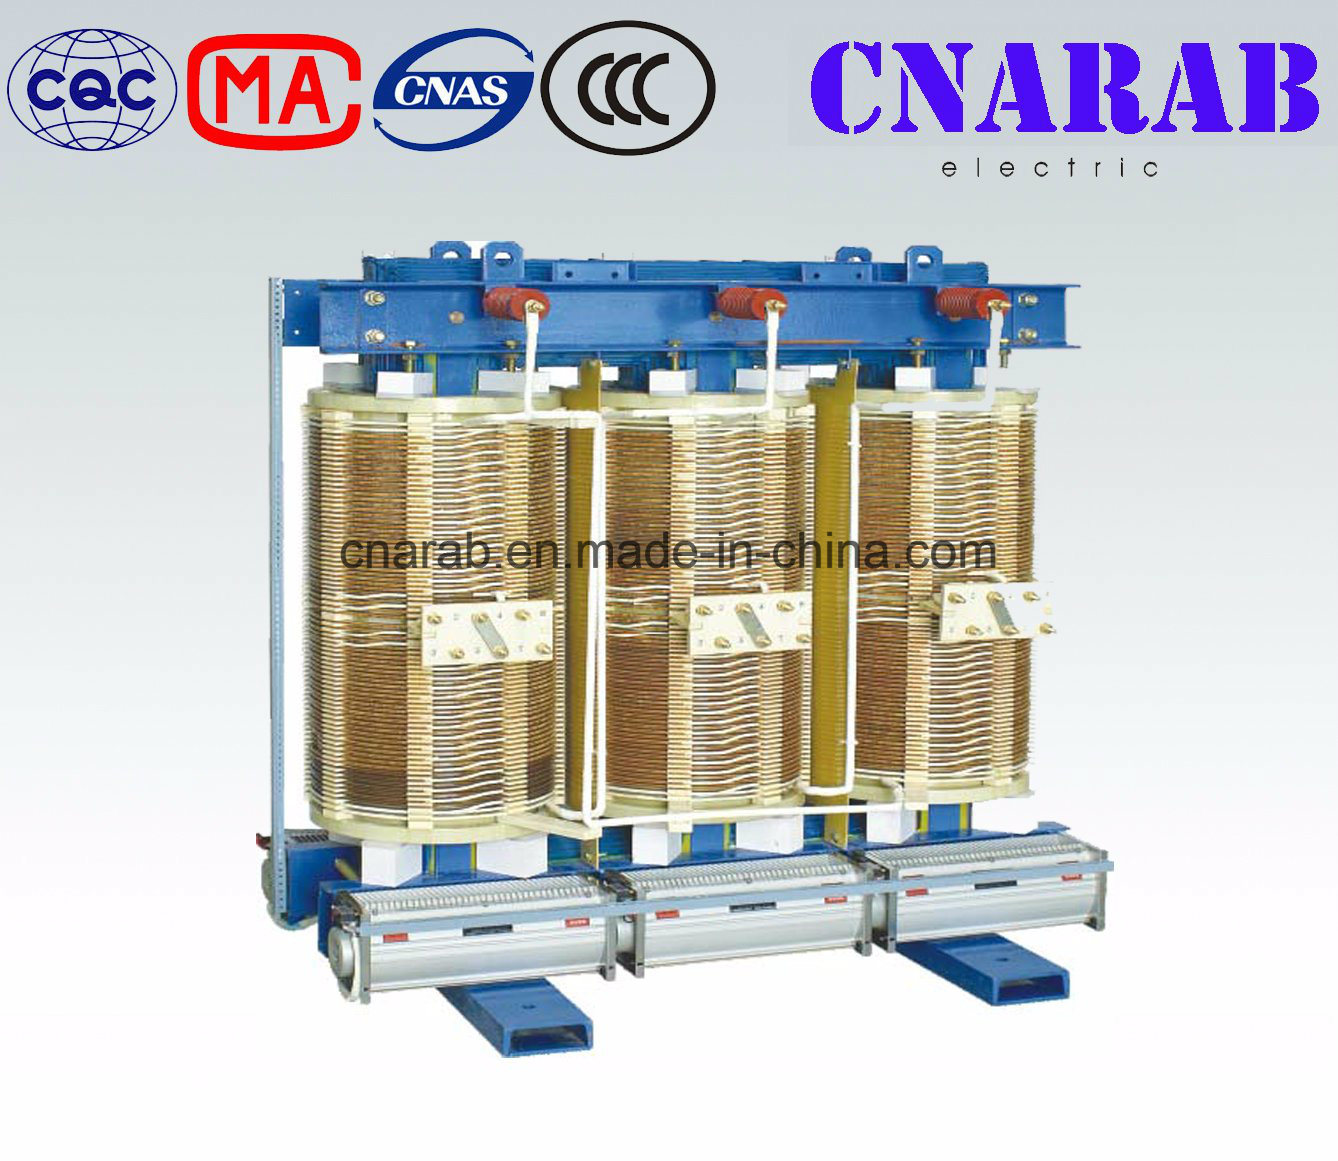 Non-Encapsulated Coil Dry Type Power Transformer (SG(B)10)